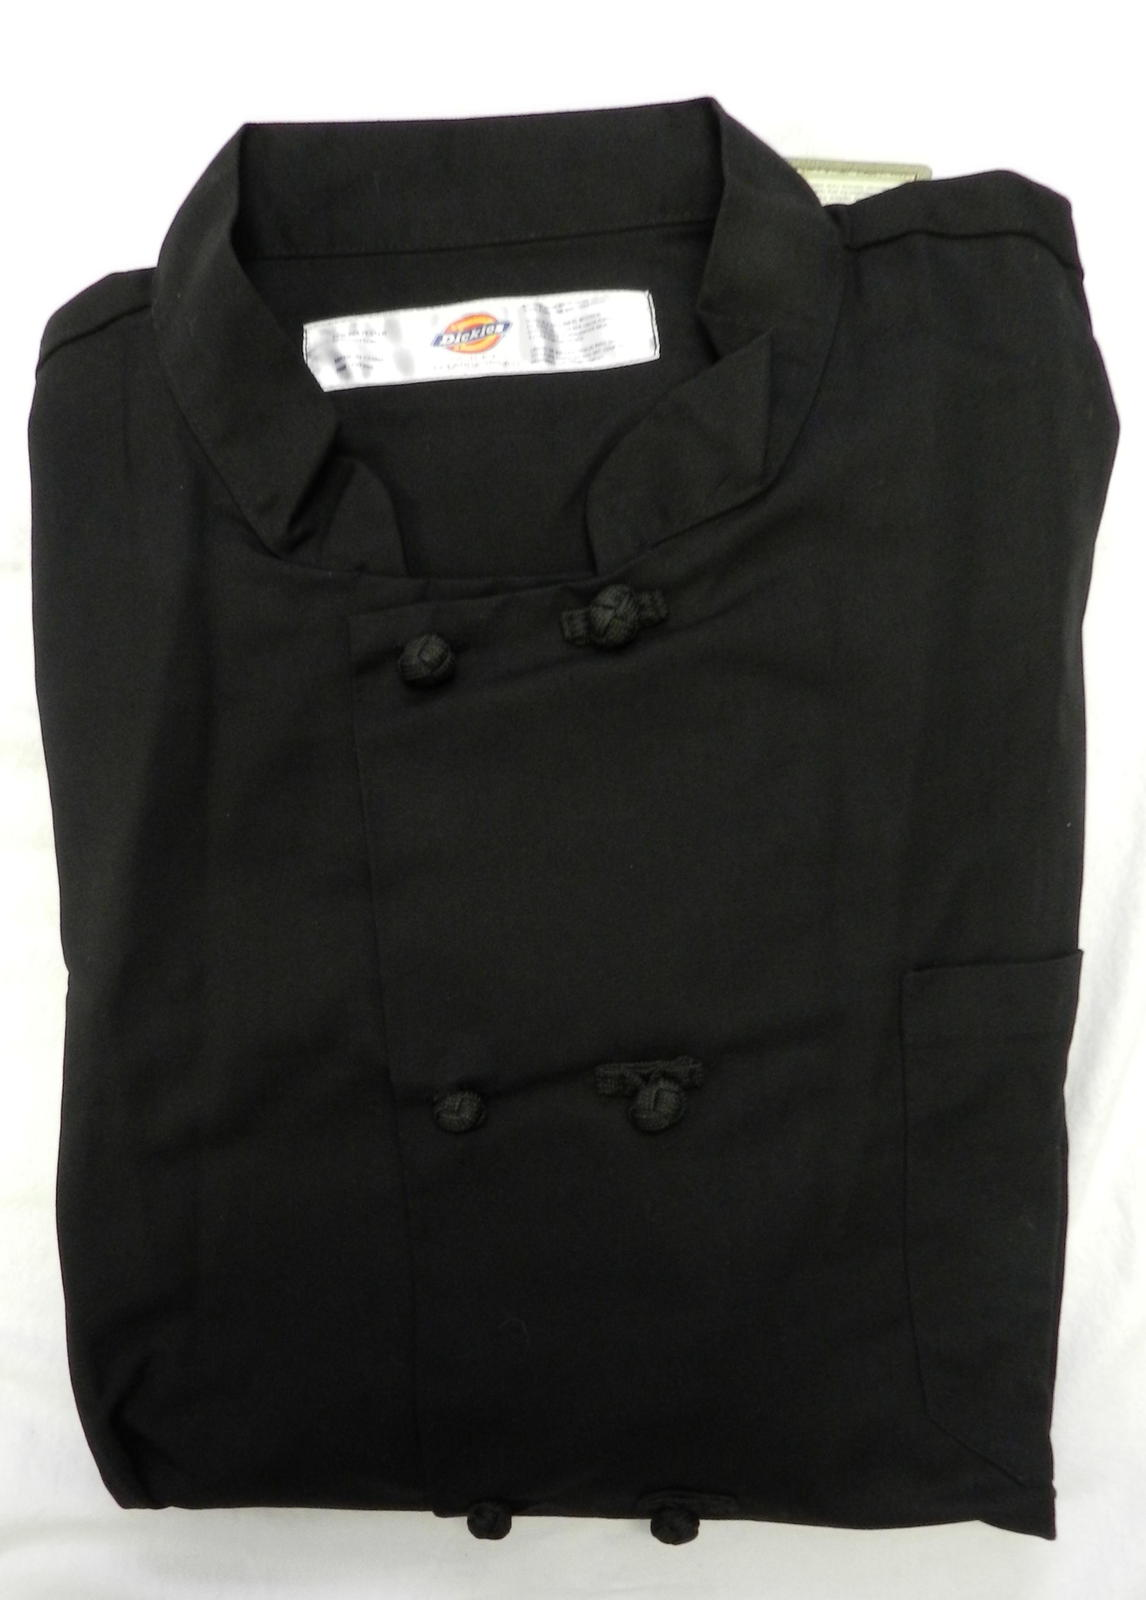 Dickies CW070304C Cloth Knot Button Black Uniform Chef Coat Jacket 4X New